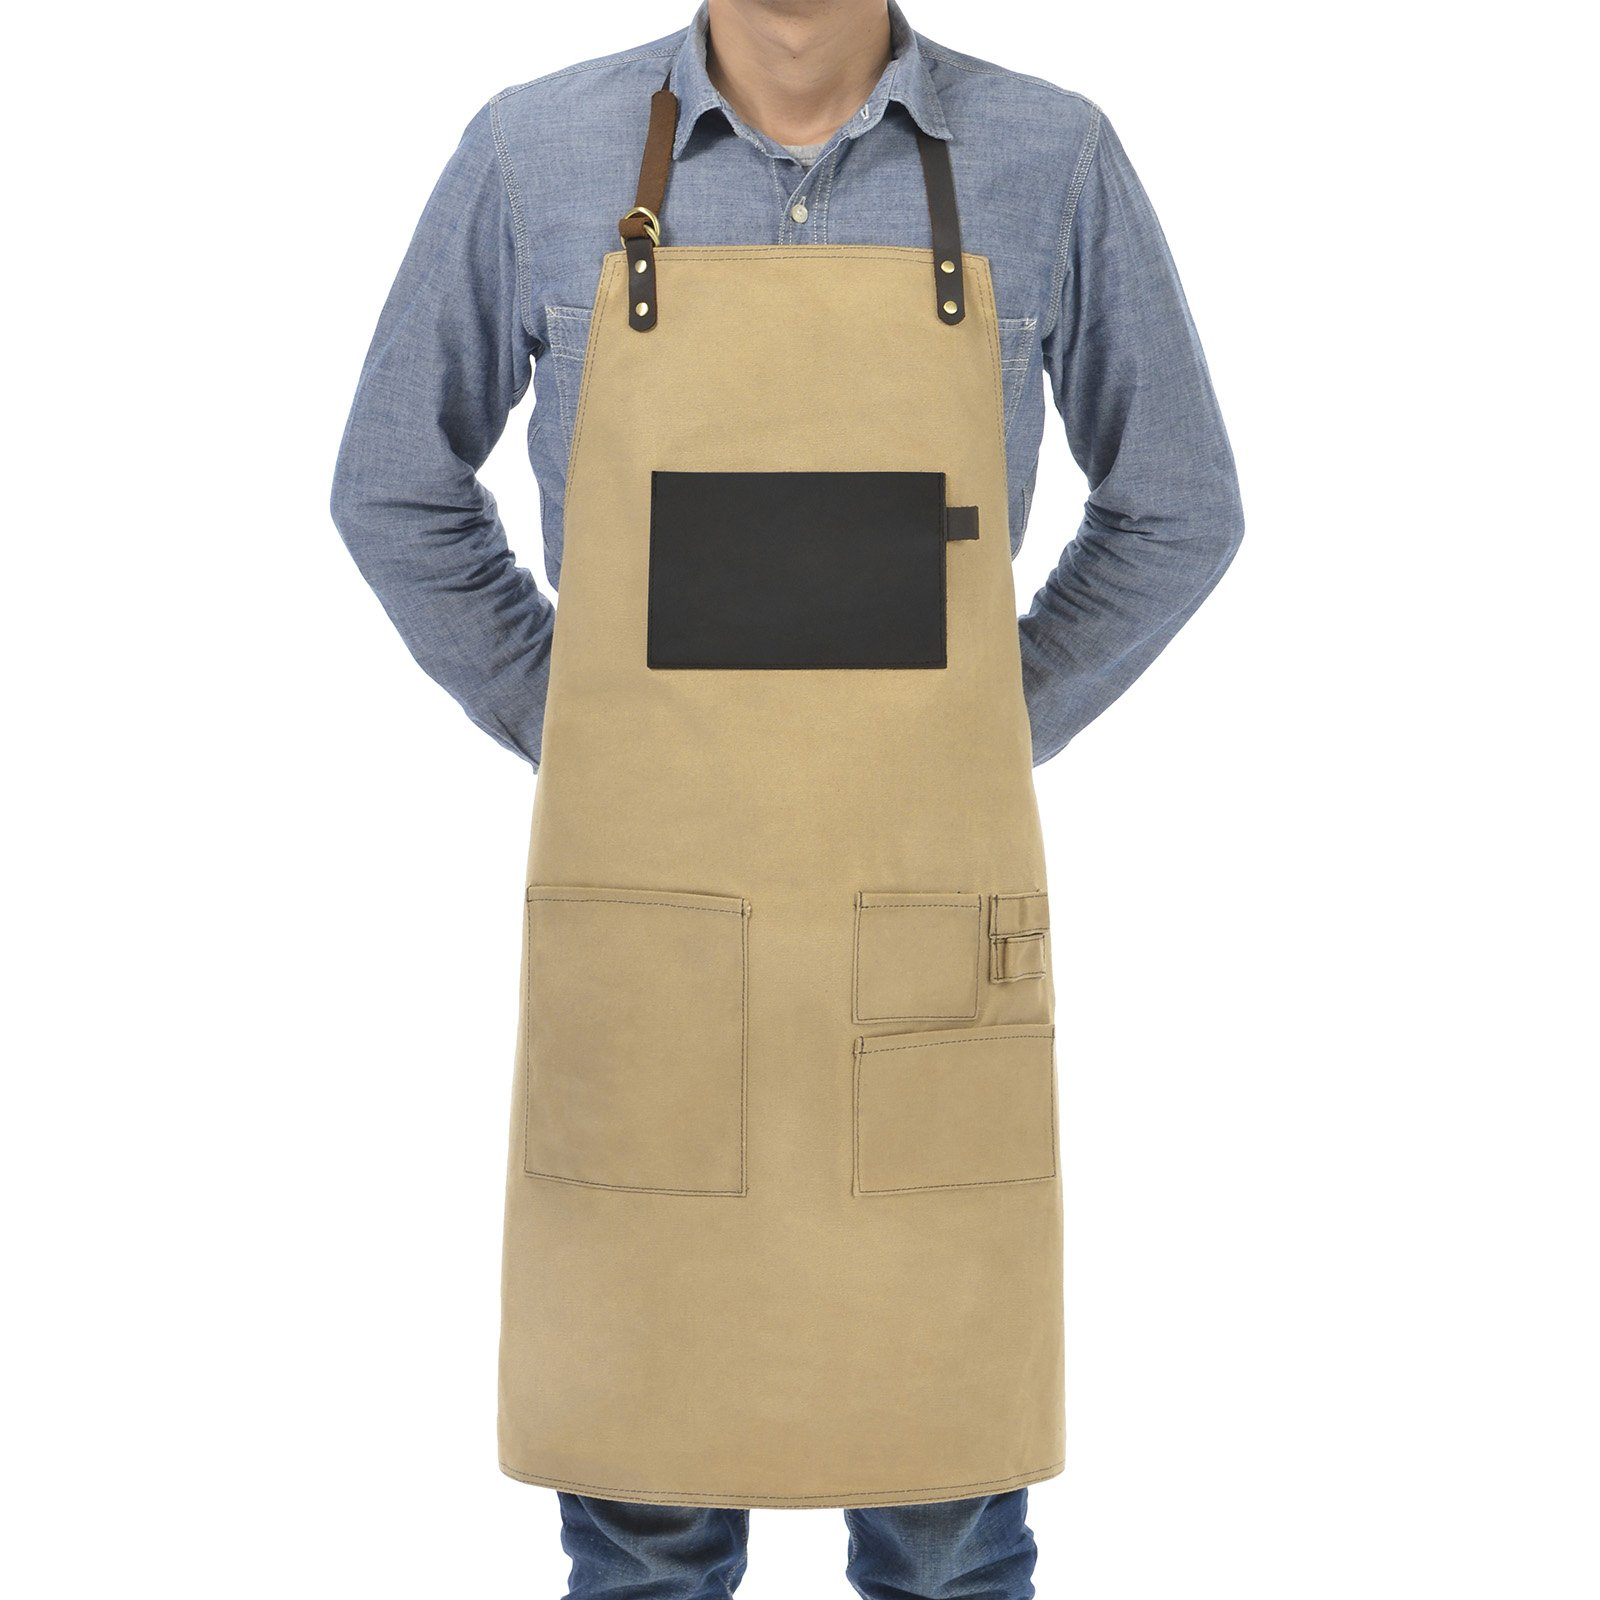 VEEYOO Heavy Duty Waxed Canvas Utility Apron with Pockets, Adjustable Shop Work Tool Welding Apron for Men and Women, Tan, 27x34 inches by VEEYOO (Image #1)